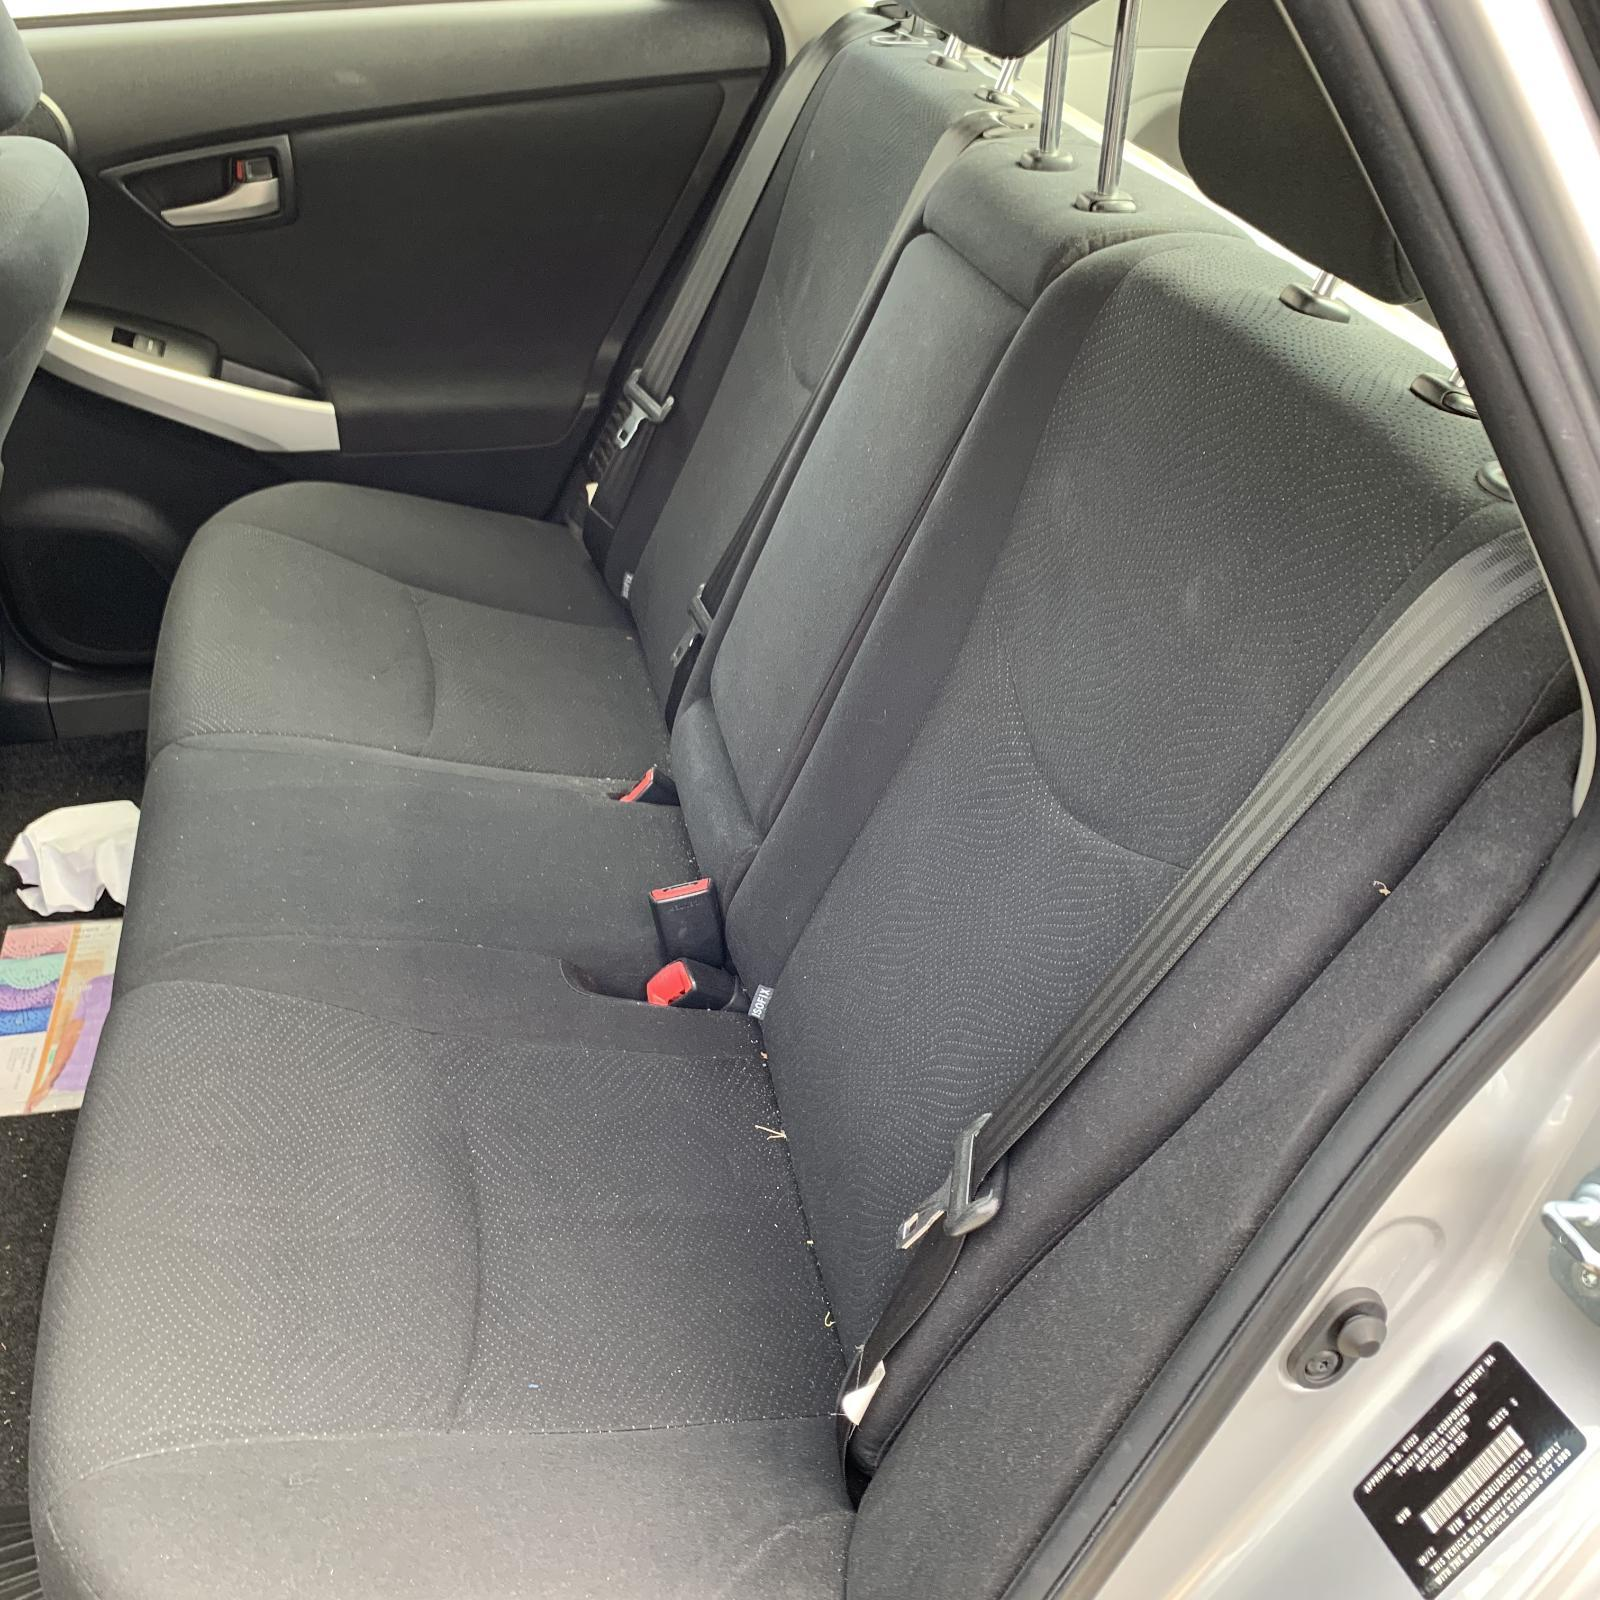 TOYOTA PRIUS, 2nd Seat (Rear Seat), LH REAR, ZVW30R, CLOTH, GREY, 07/09-12/15